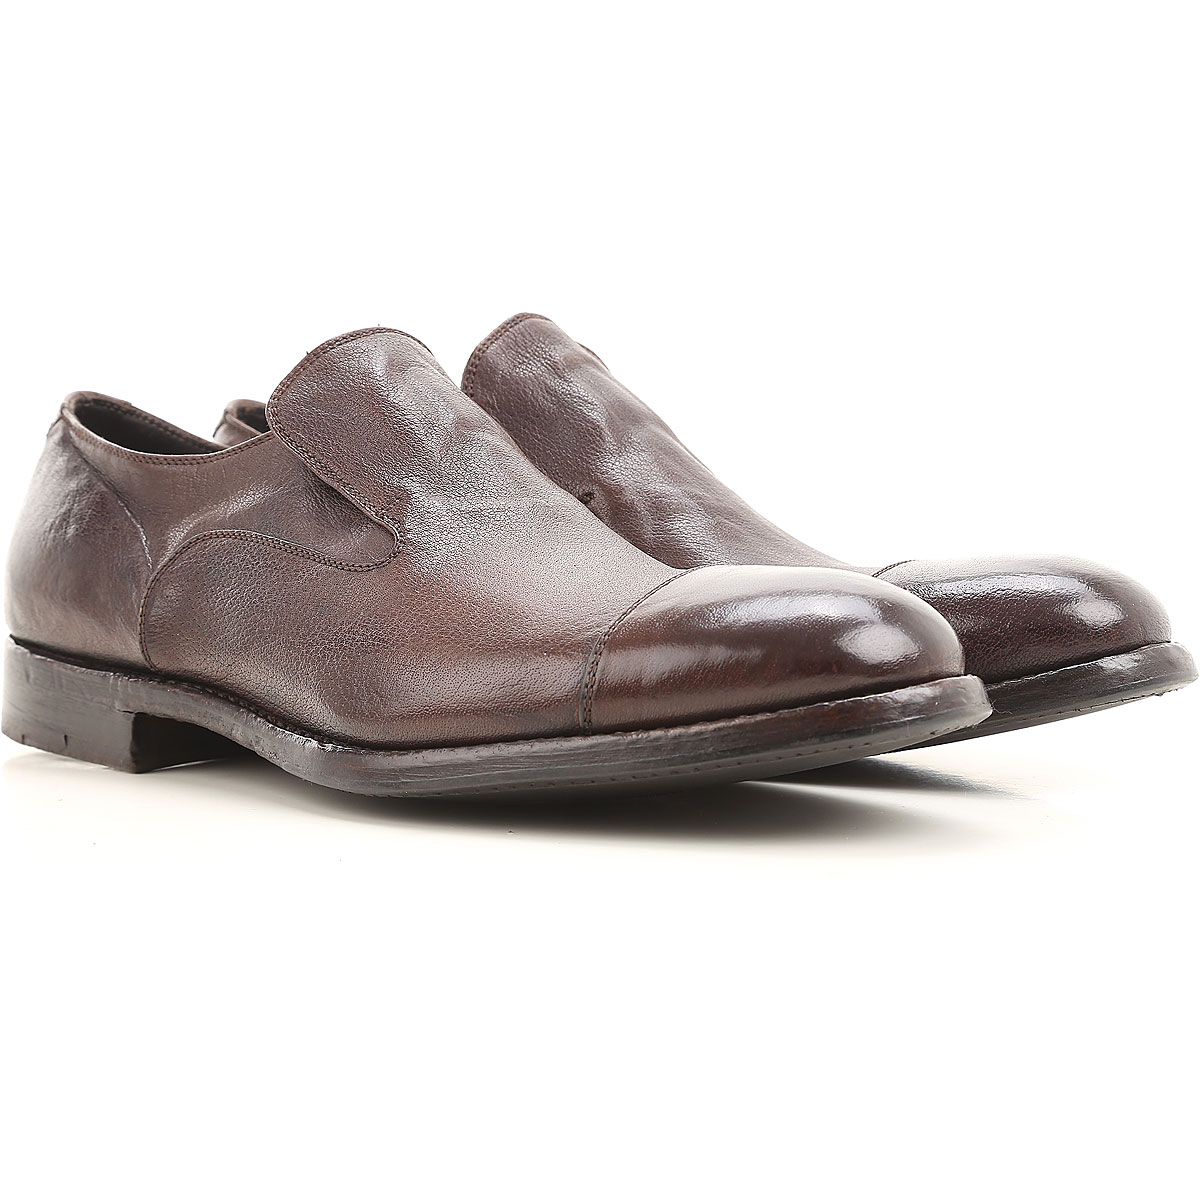 Image of Alberto Fasciani Loafers for Men On Sale, Brown coffee, Leather, 2017, 7 7.5 8 9